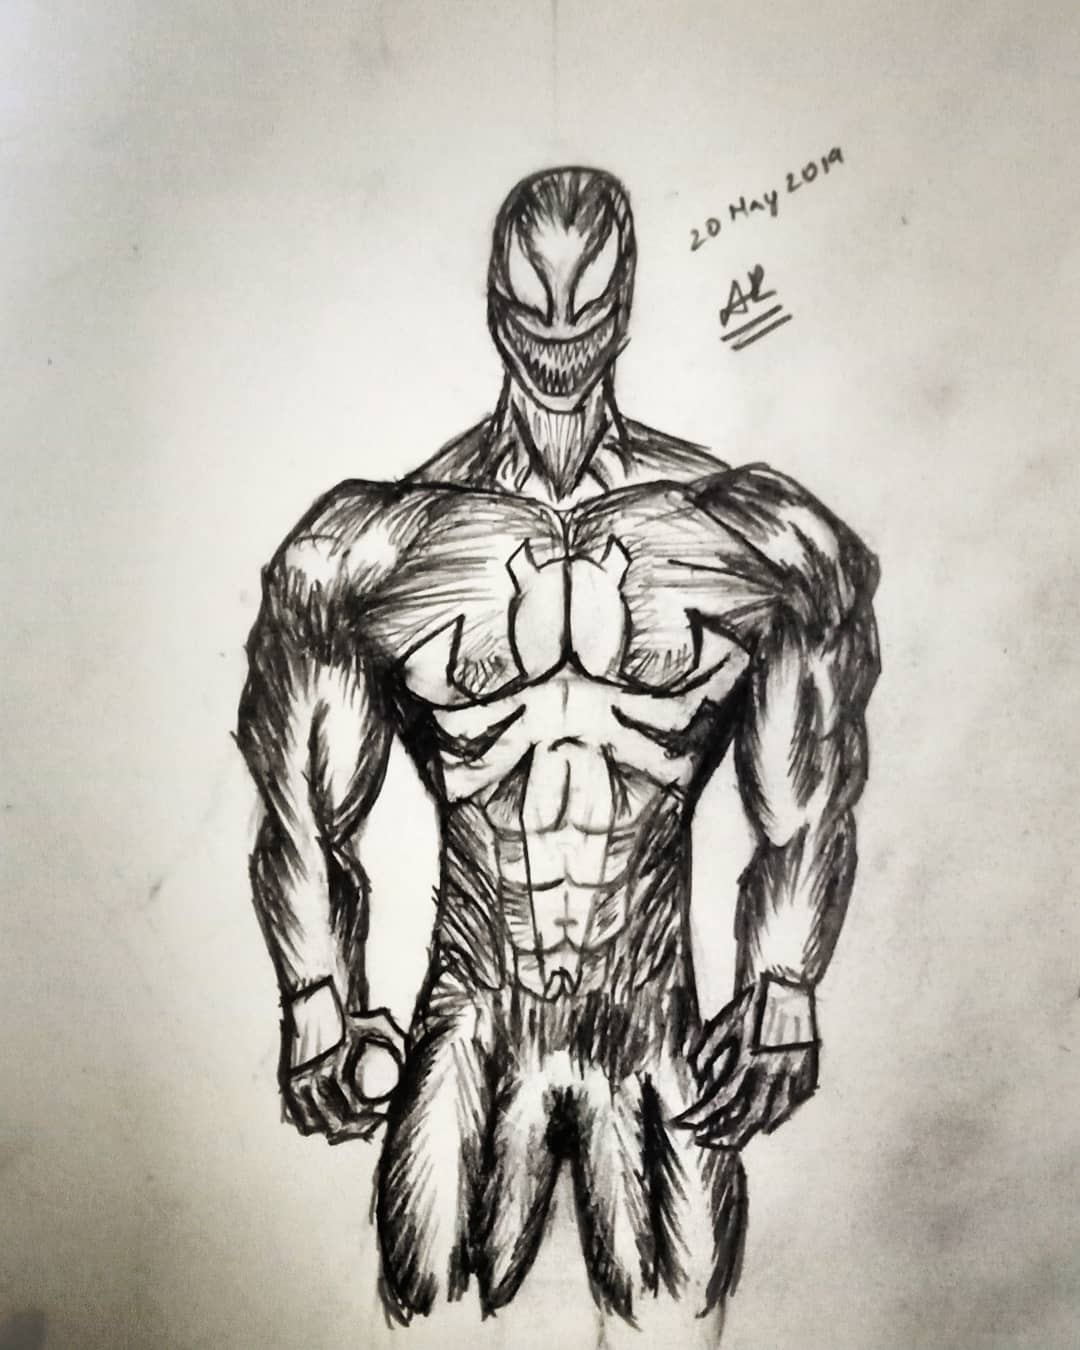 Off-topic, I gave comic book sketching a shot